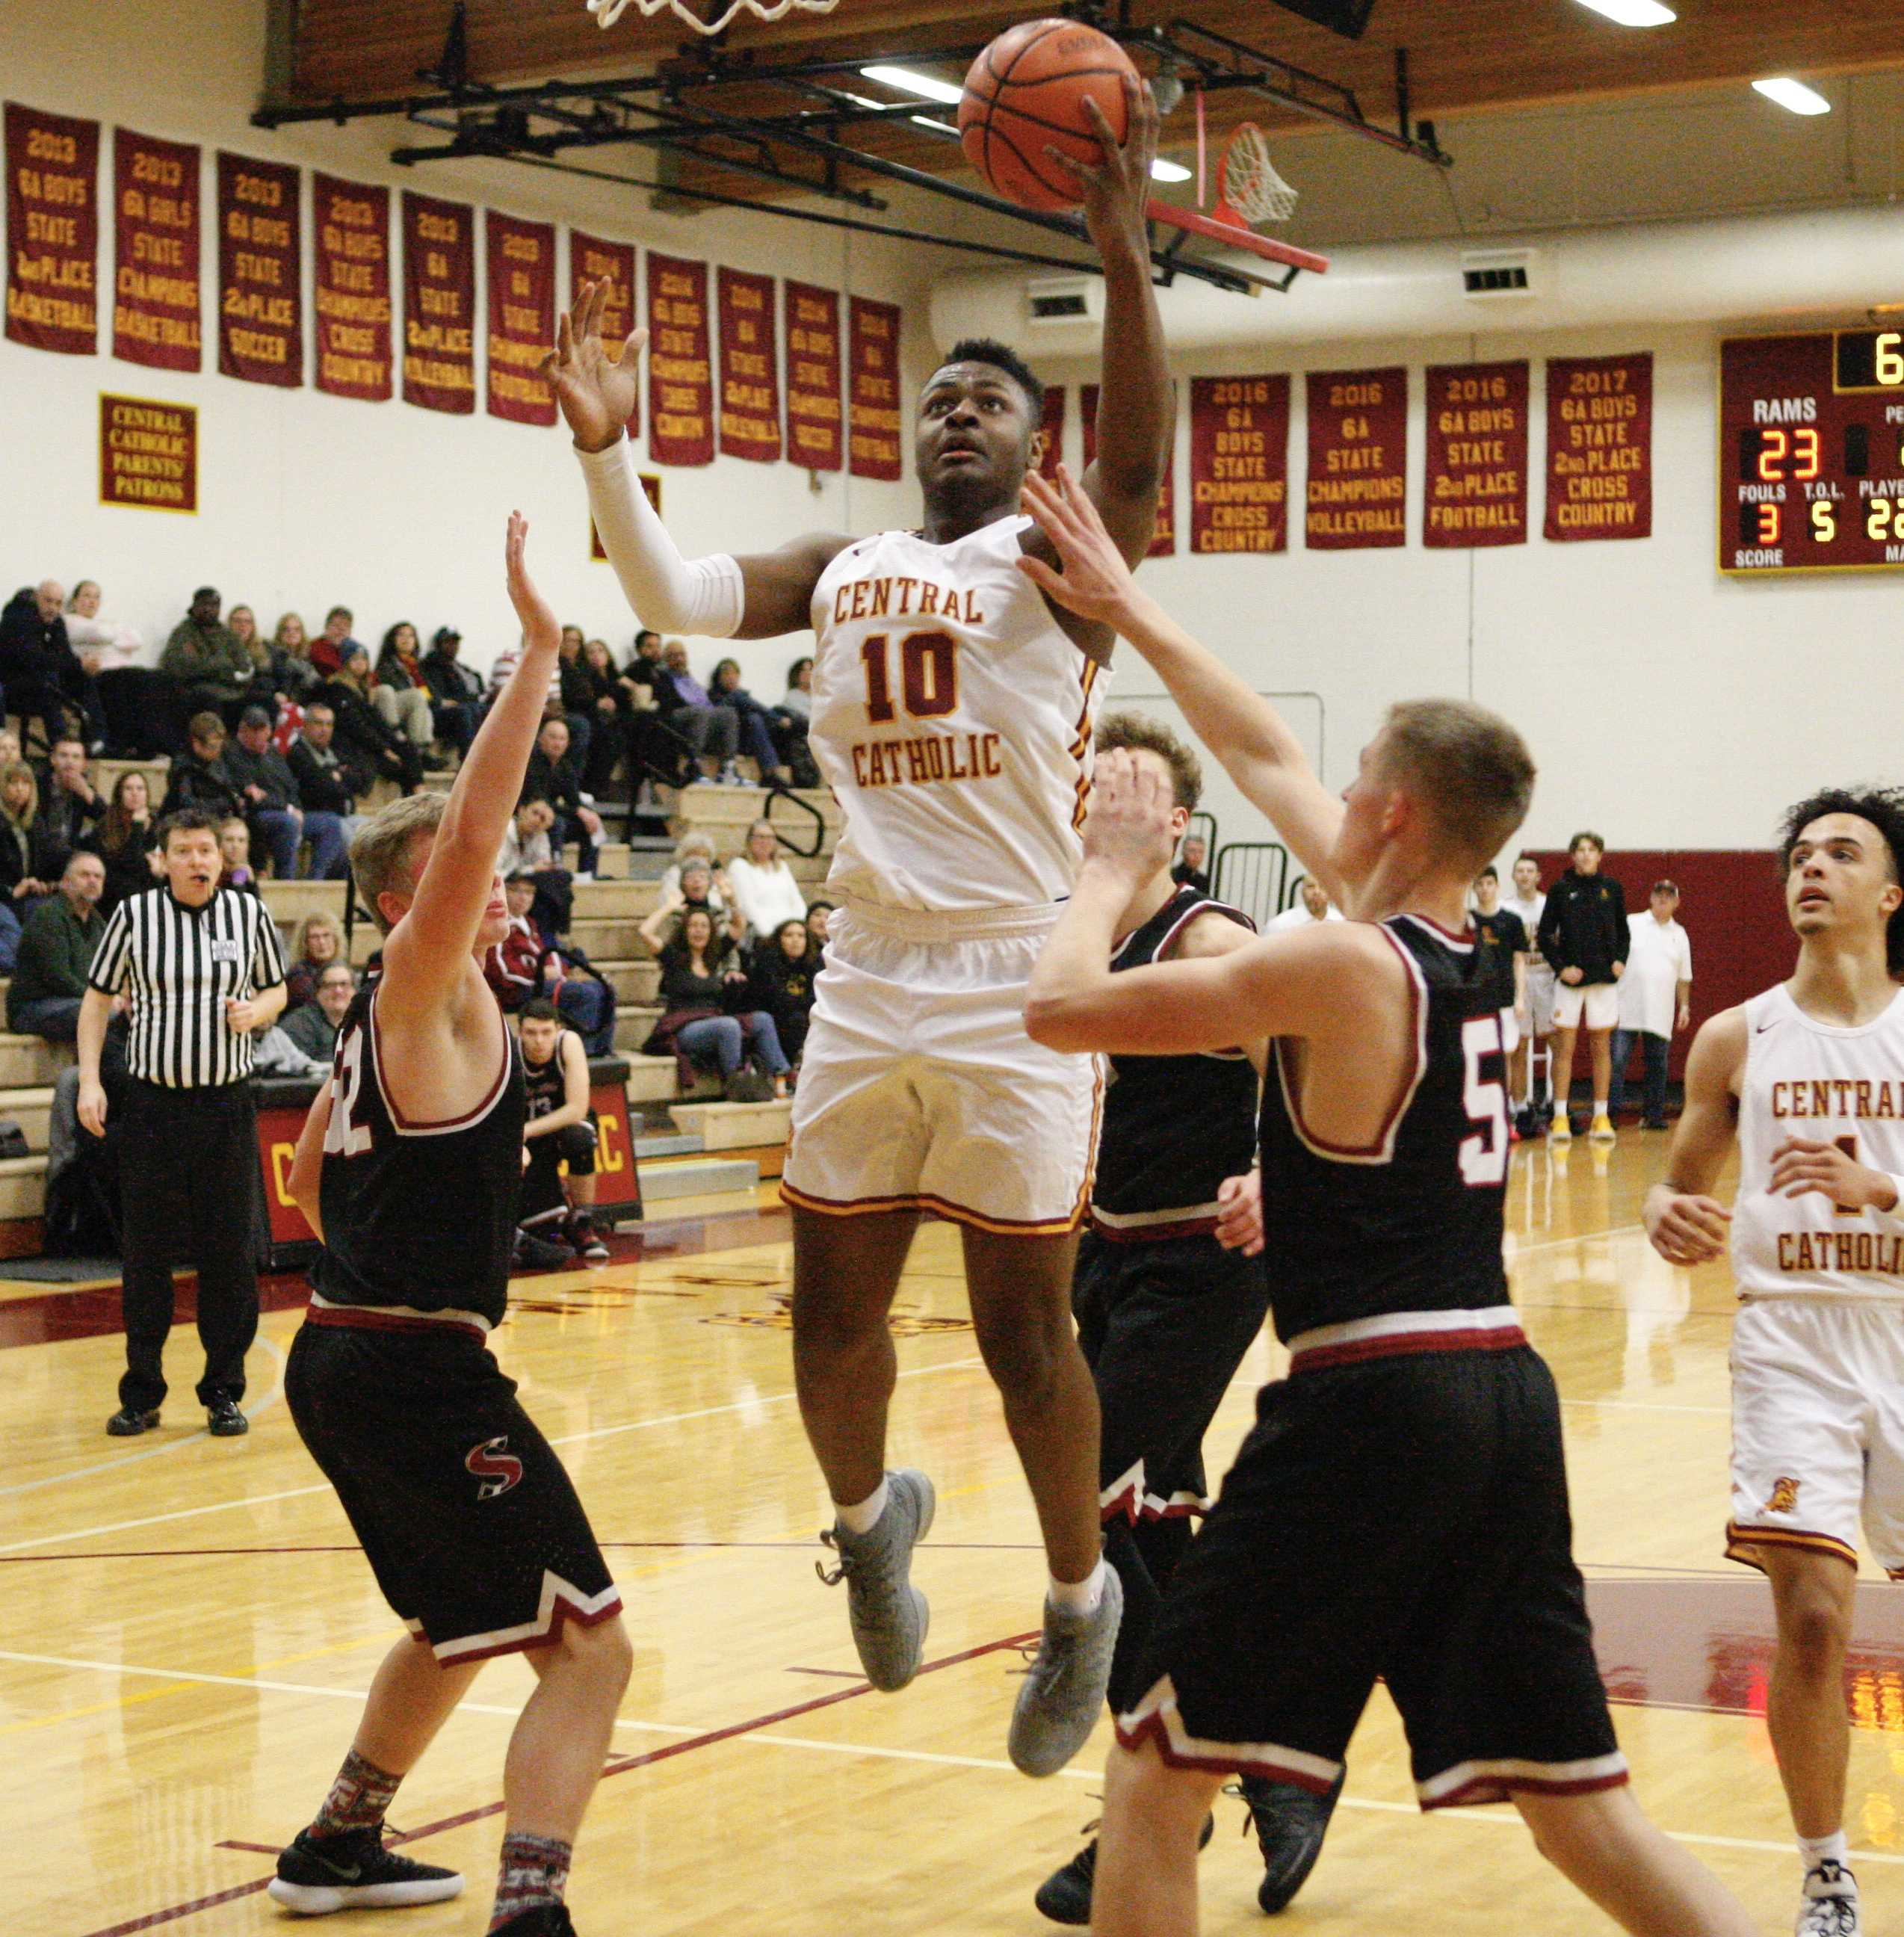 Central Catholic junior SataieVior Ayilola skies over three Sandy defenders for two of his 17 points.